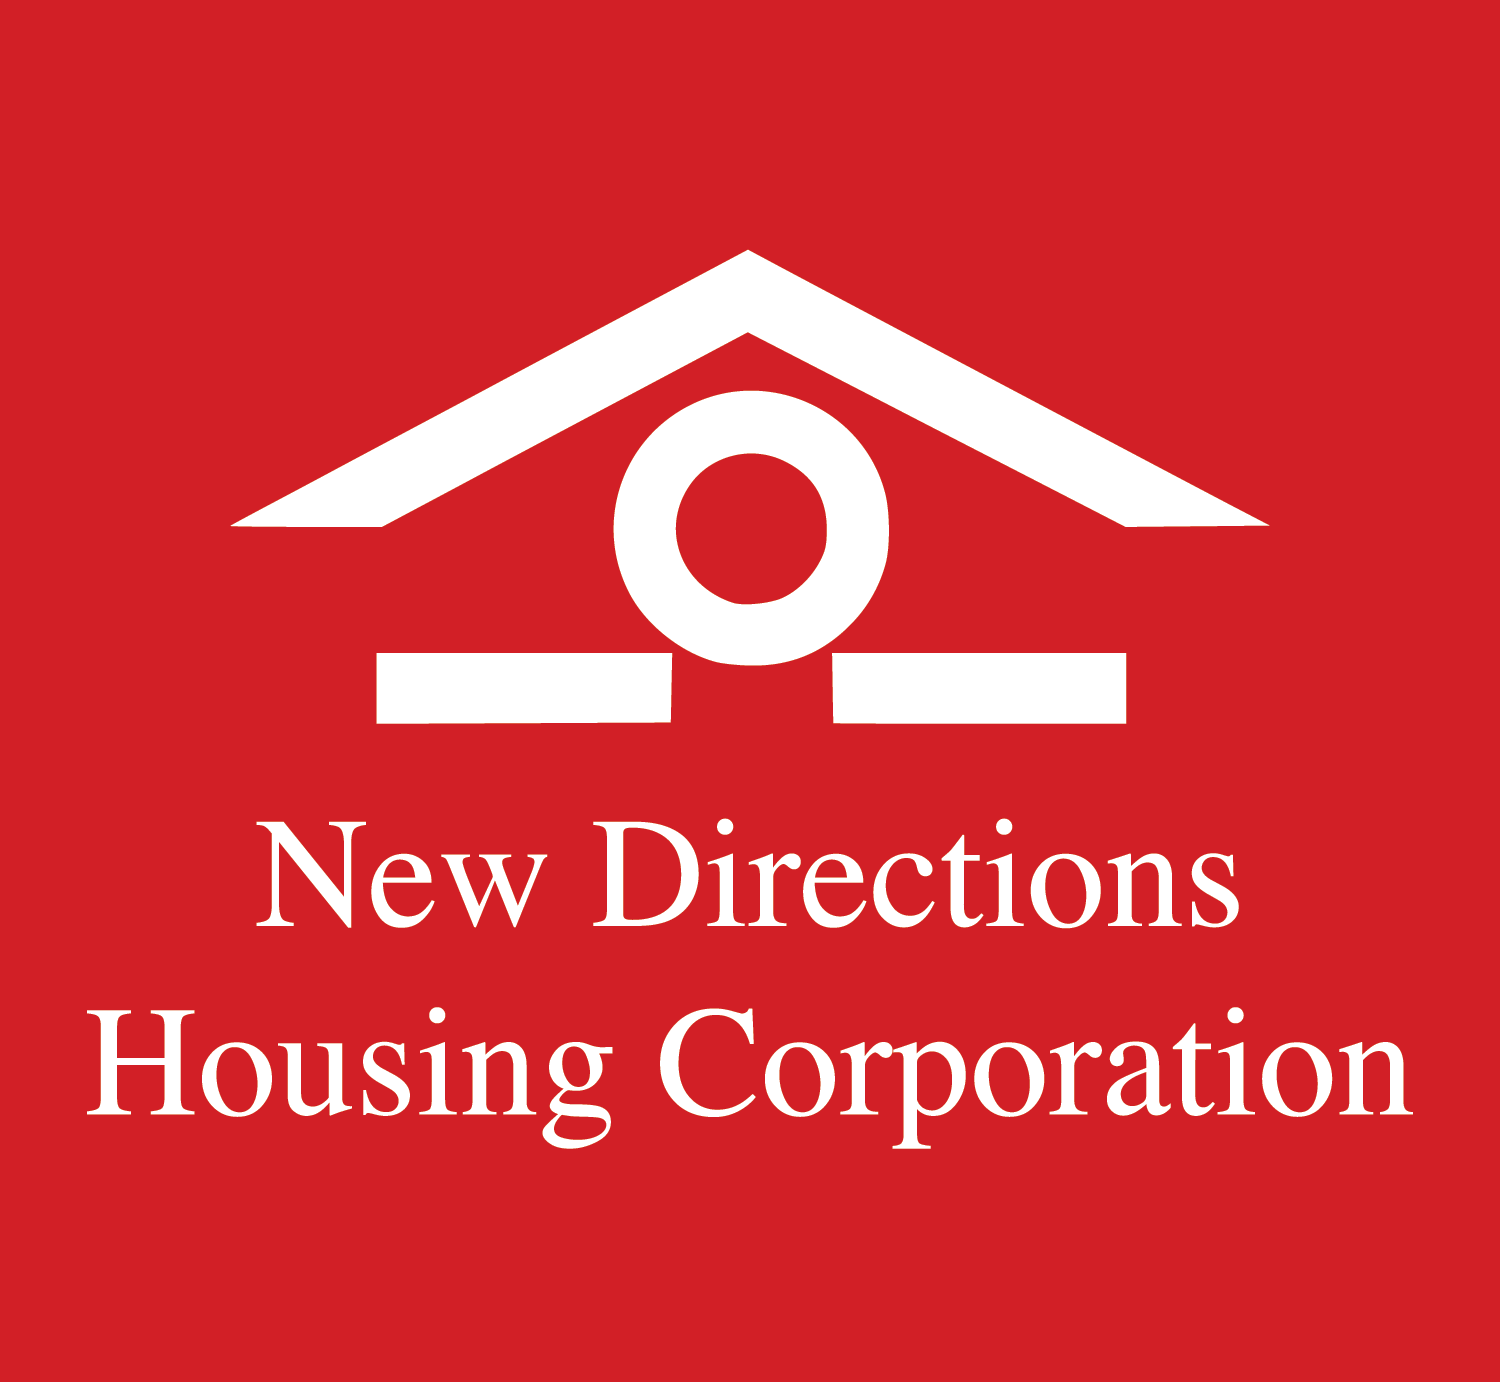 new directions housing corporation